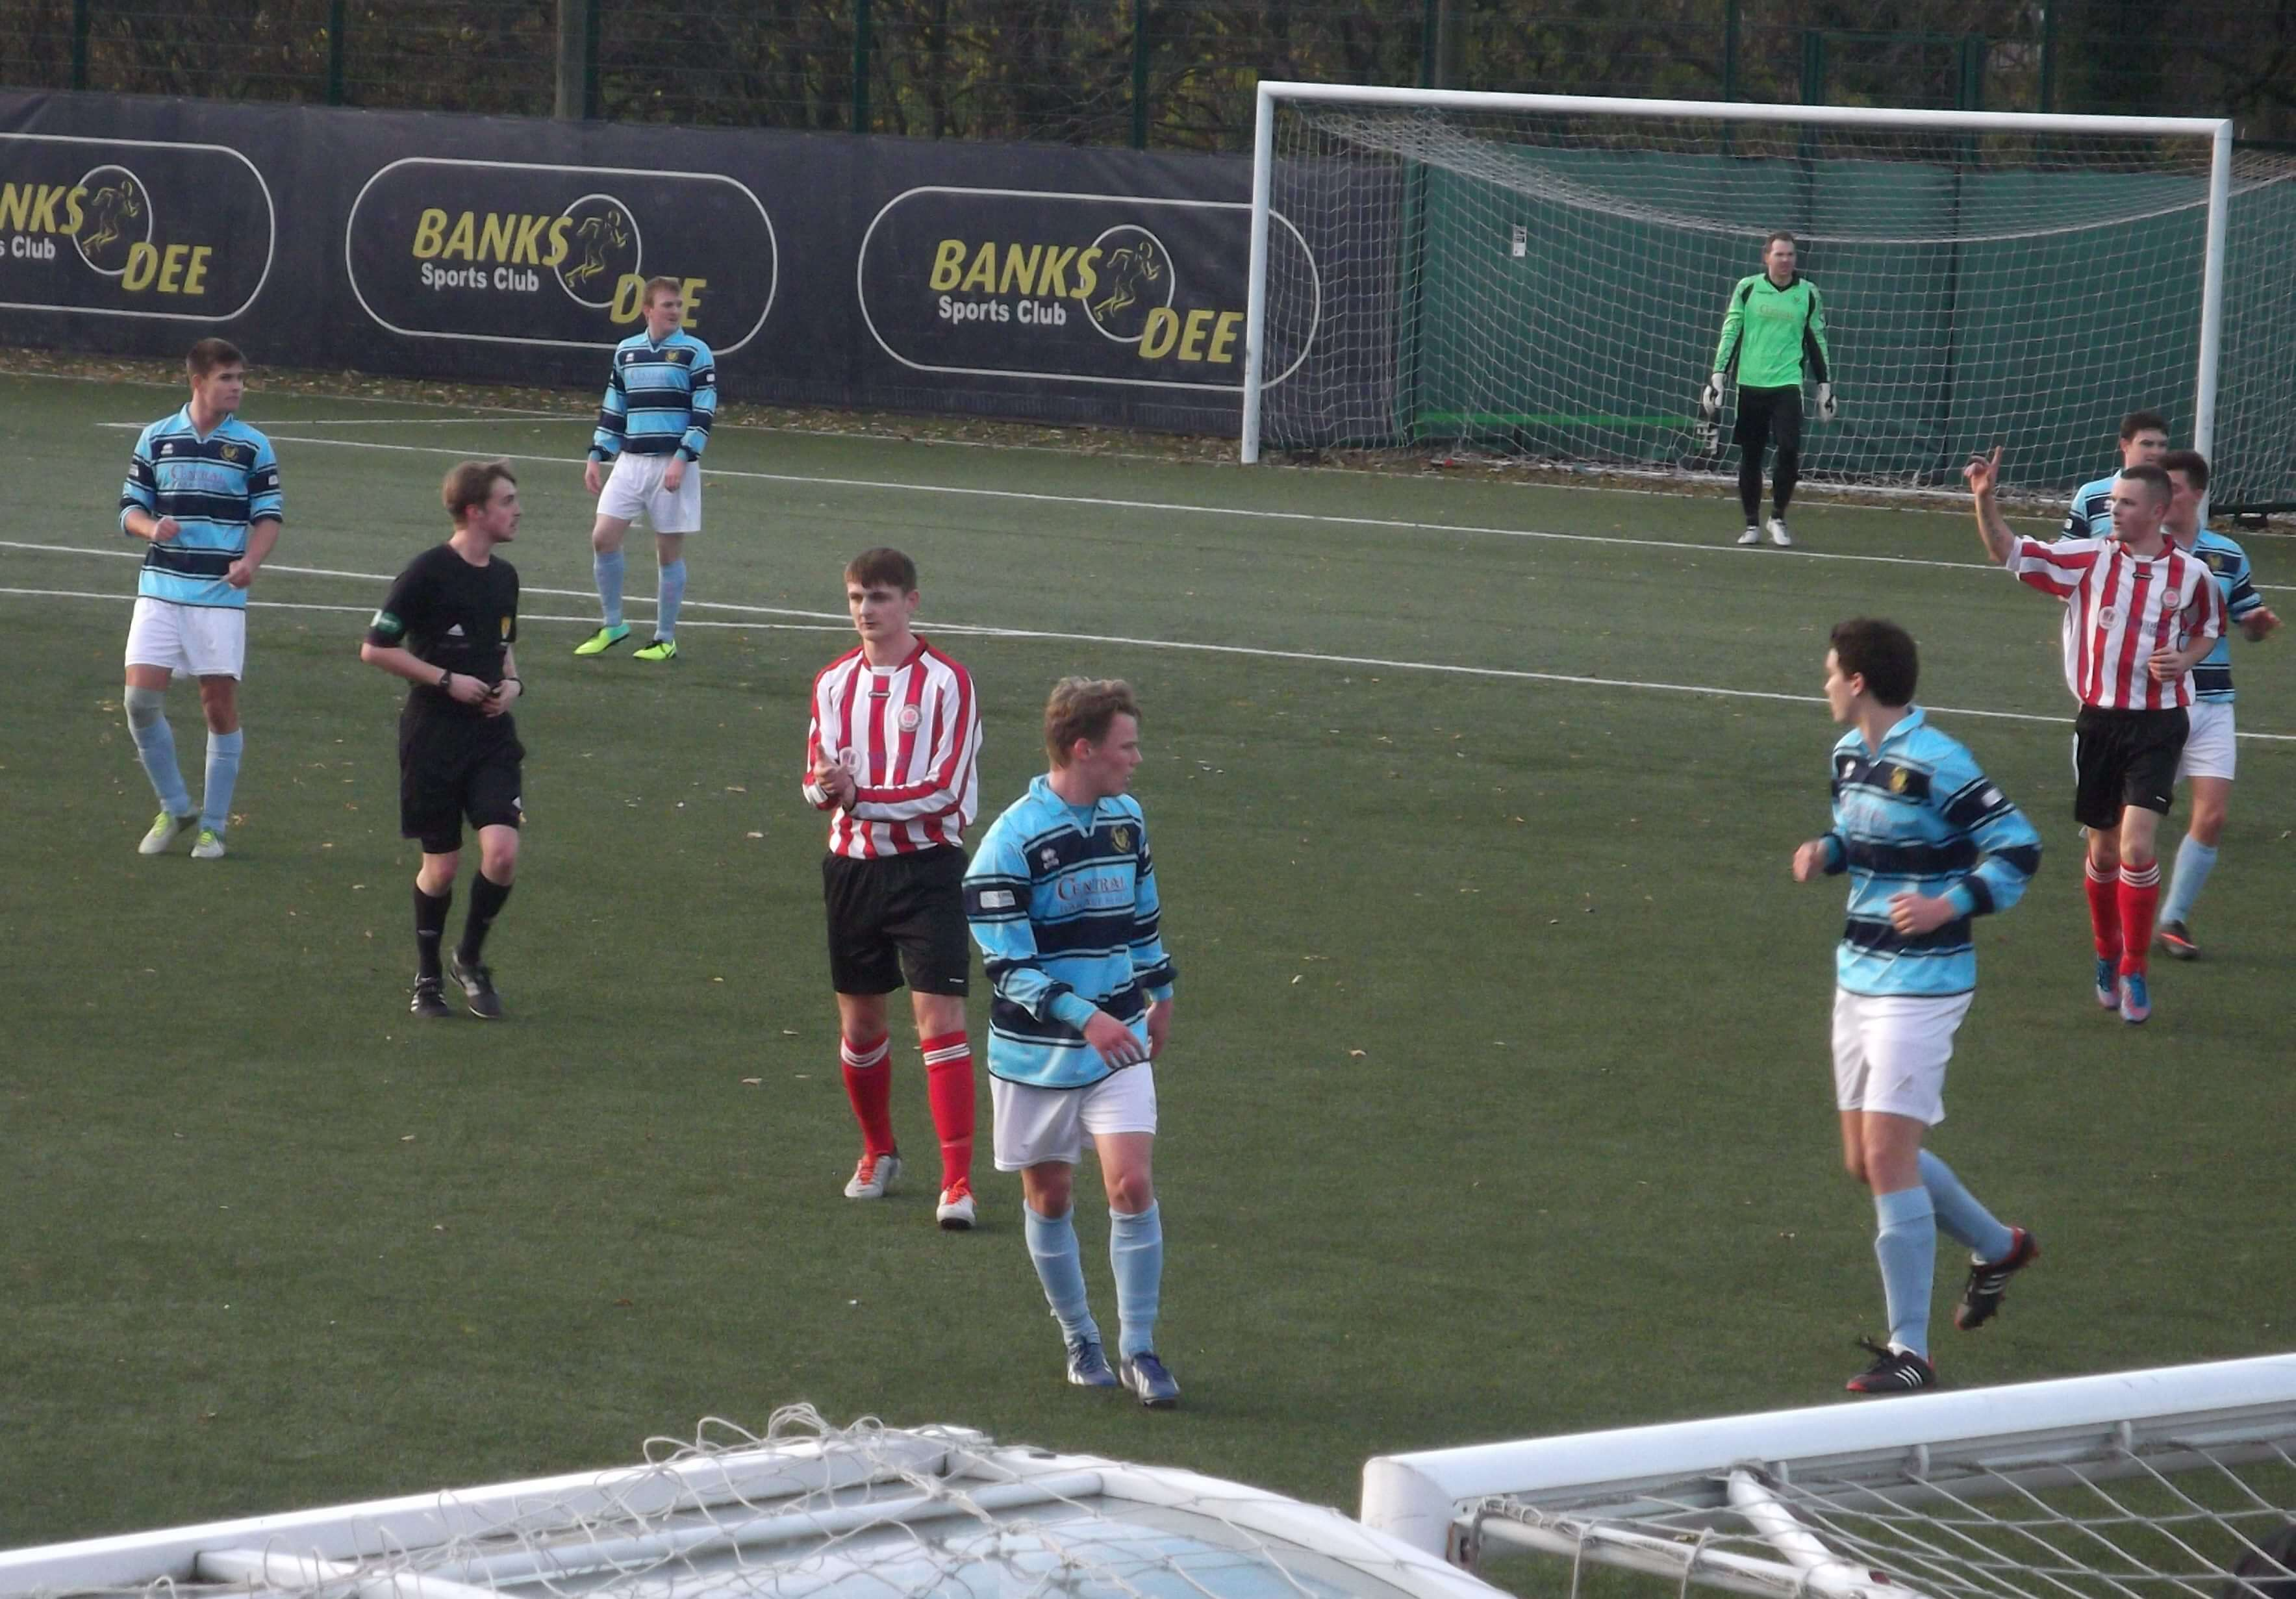 Banks o' Dee v Larkhall Thistle, Scottish Cup Third Round 23rd November 2013